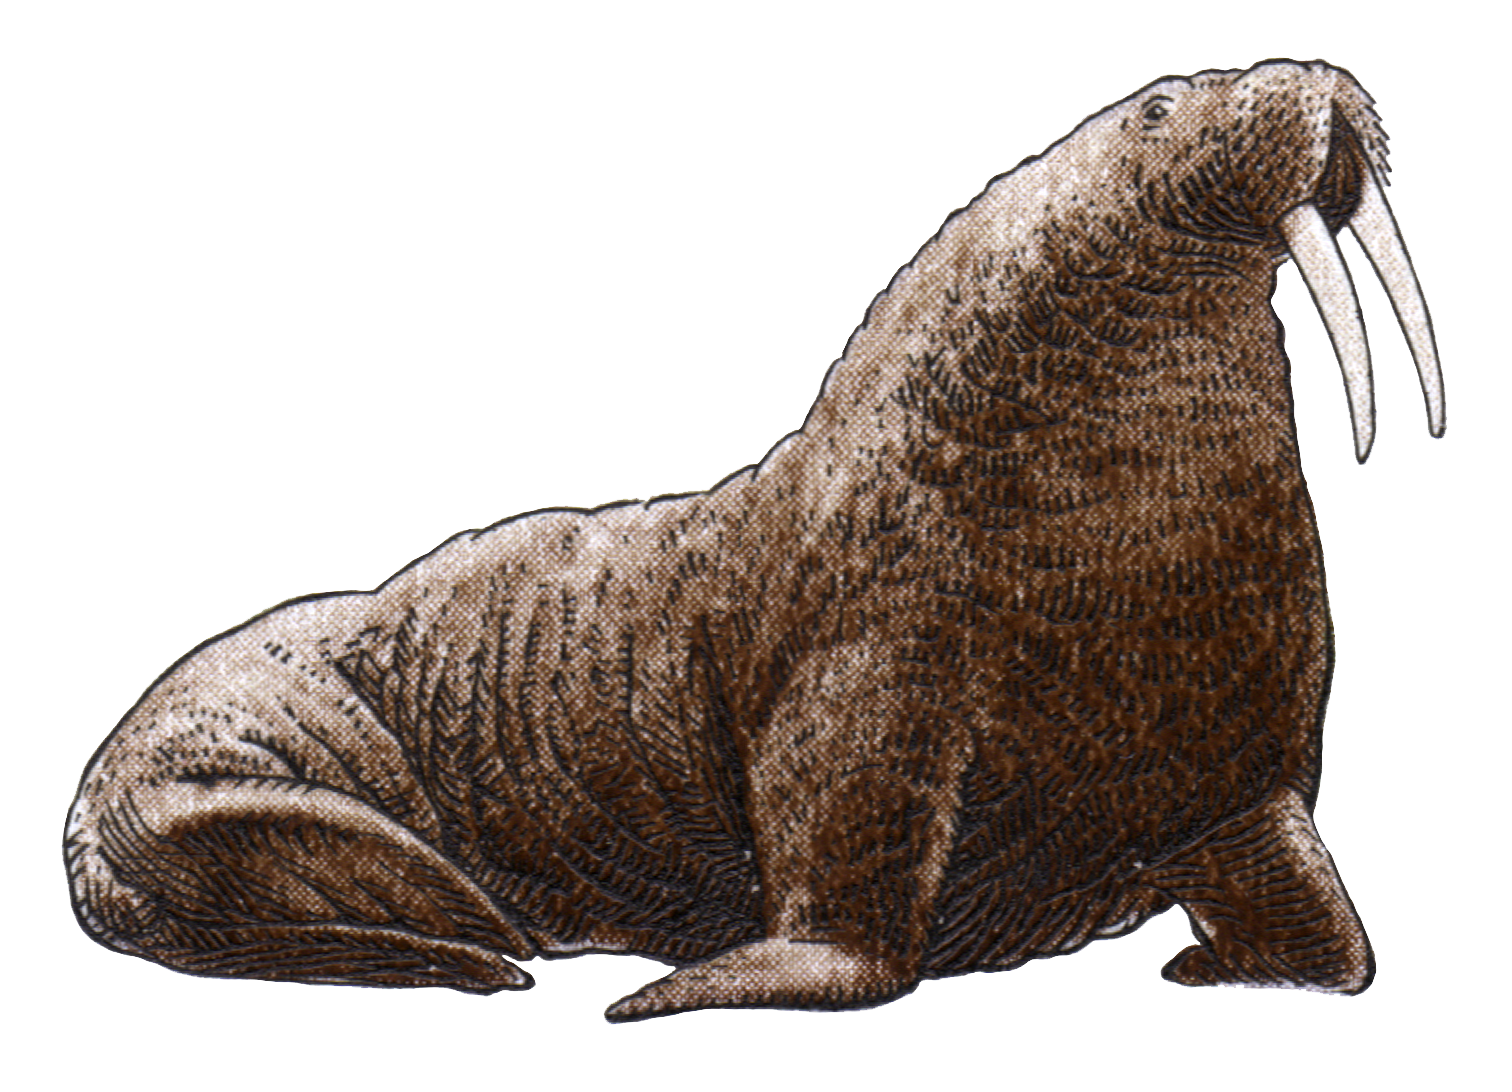 Walrus PNG Image File.